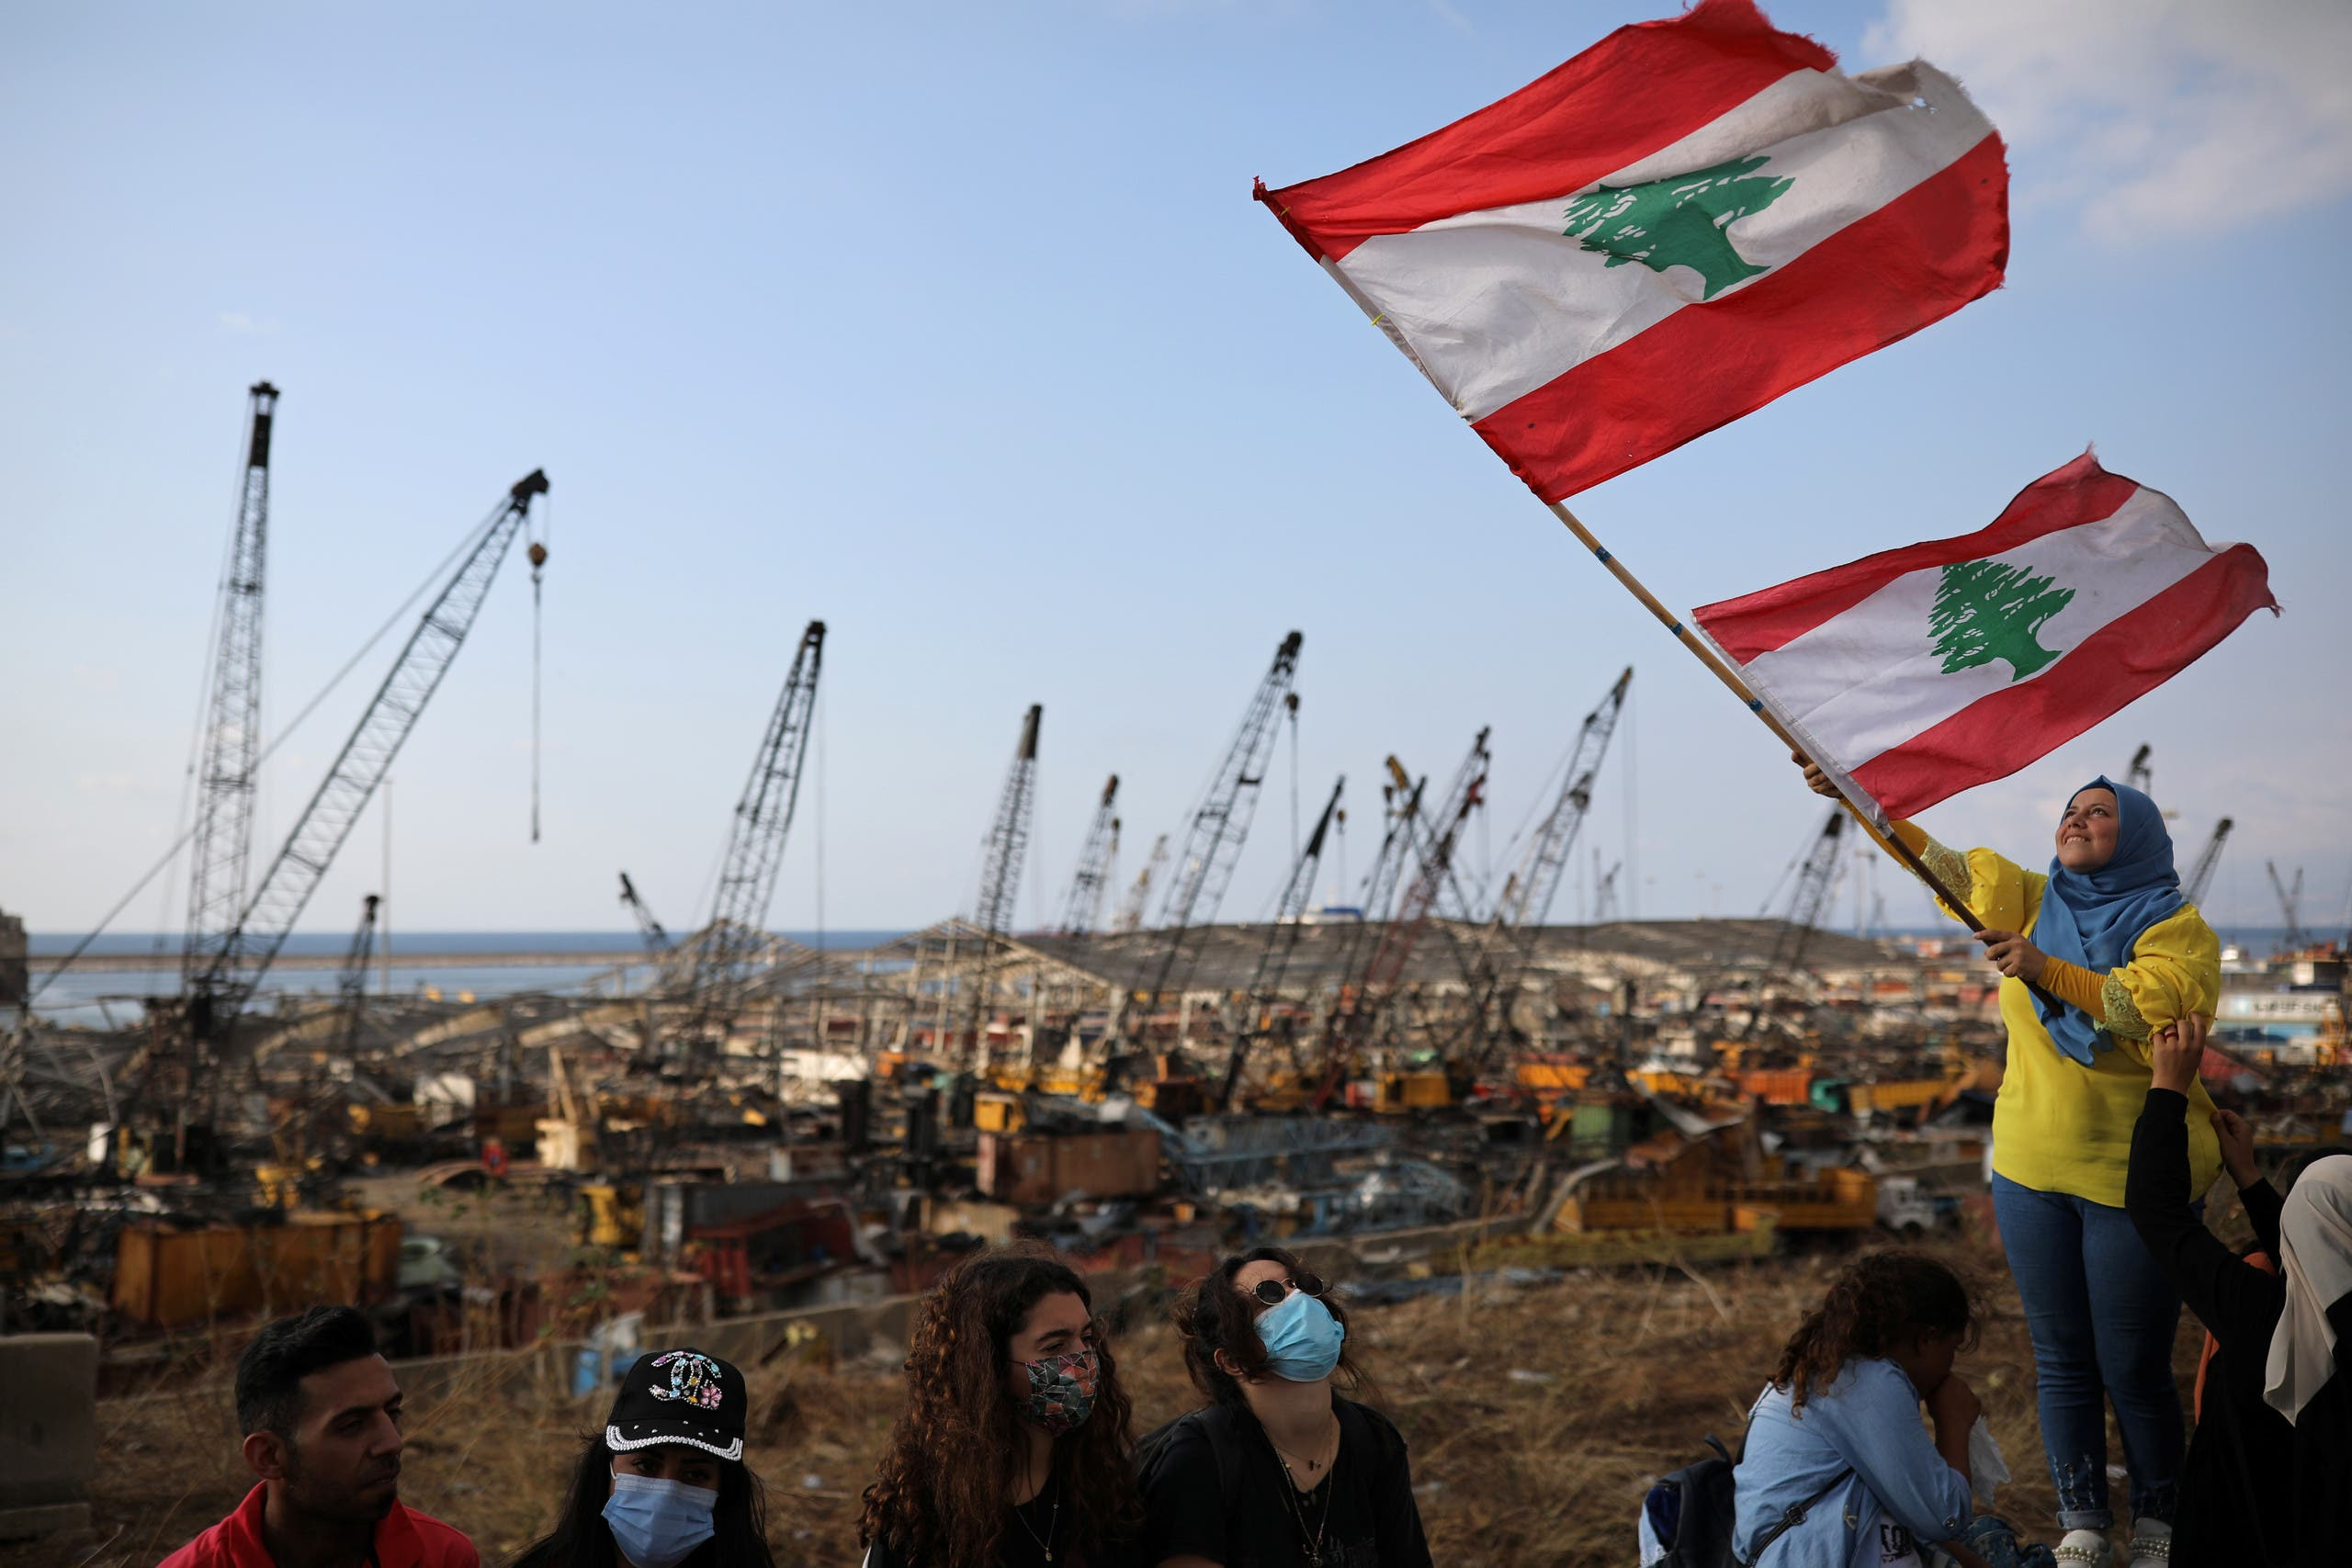 A demonstrator waves the Lebanese flag during protests near the site of the blast at the Beirut's port area on August 11, 2020. (Reuters)